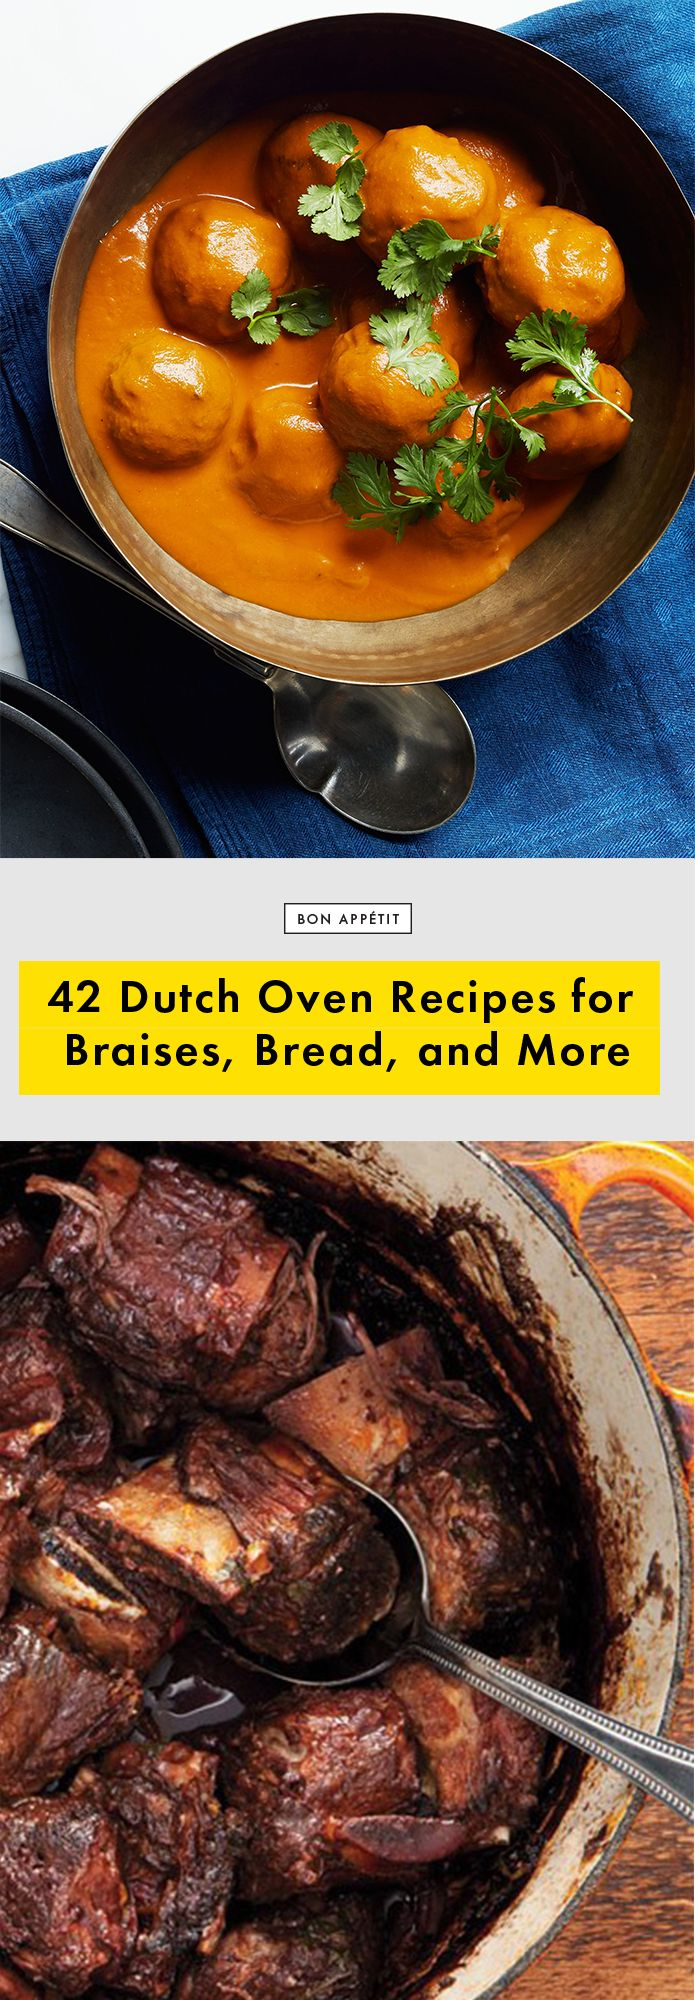 Best 25 Dutch Colonial Exterior Ideas On Pinterest: Best 25+ Dutch Oven Recipes Ideas On Pinterest